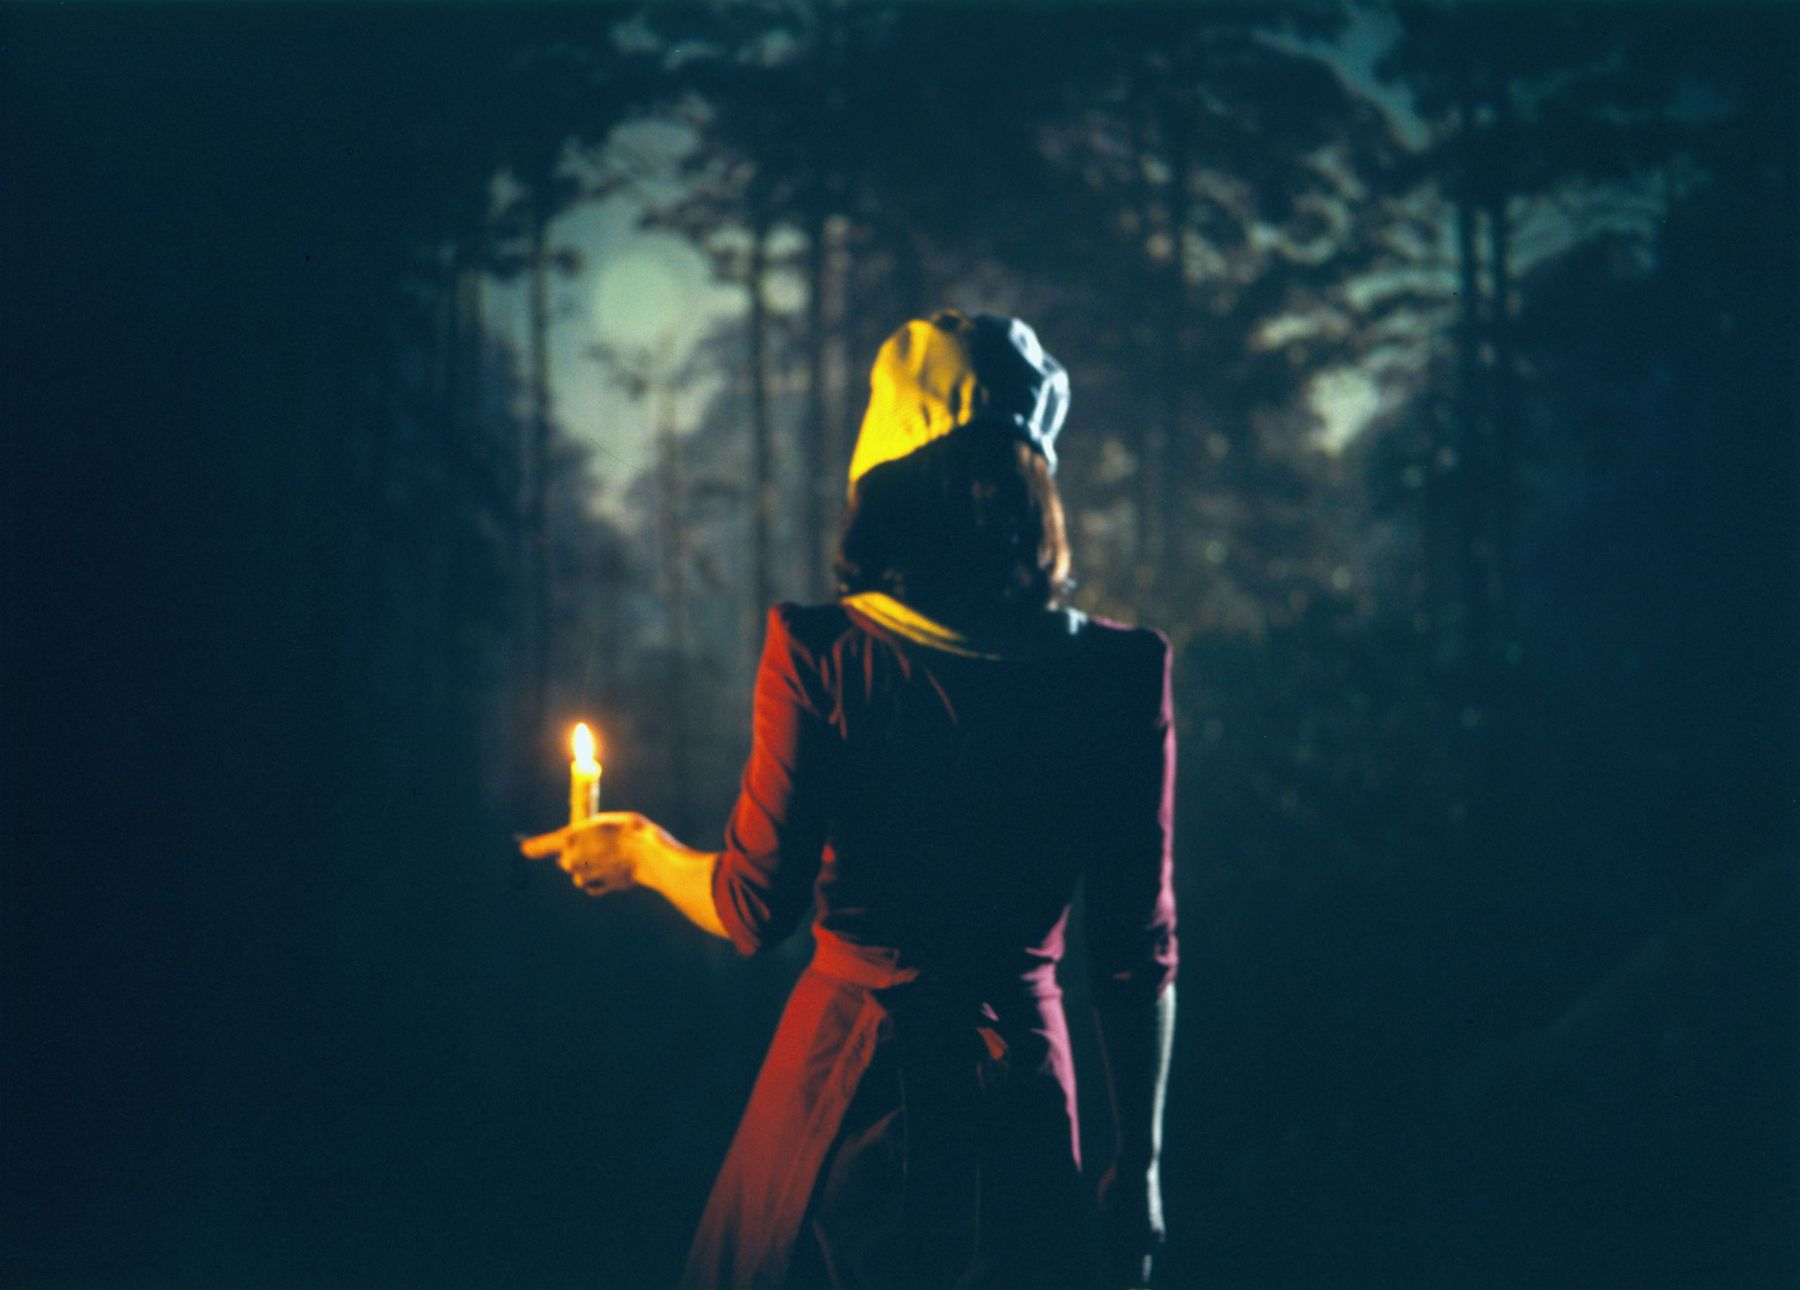 a c-print photograph of a girl in the woods by sue de beer exhibited in a contemporary art gallery